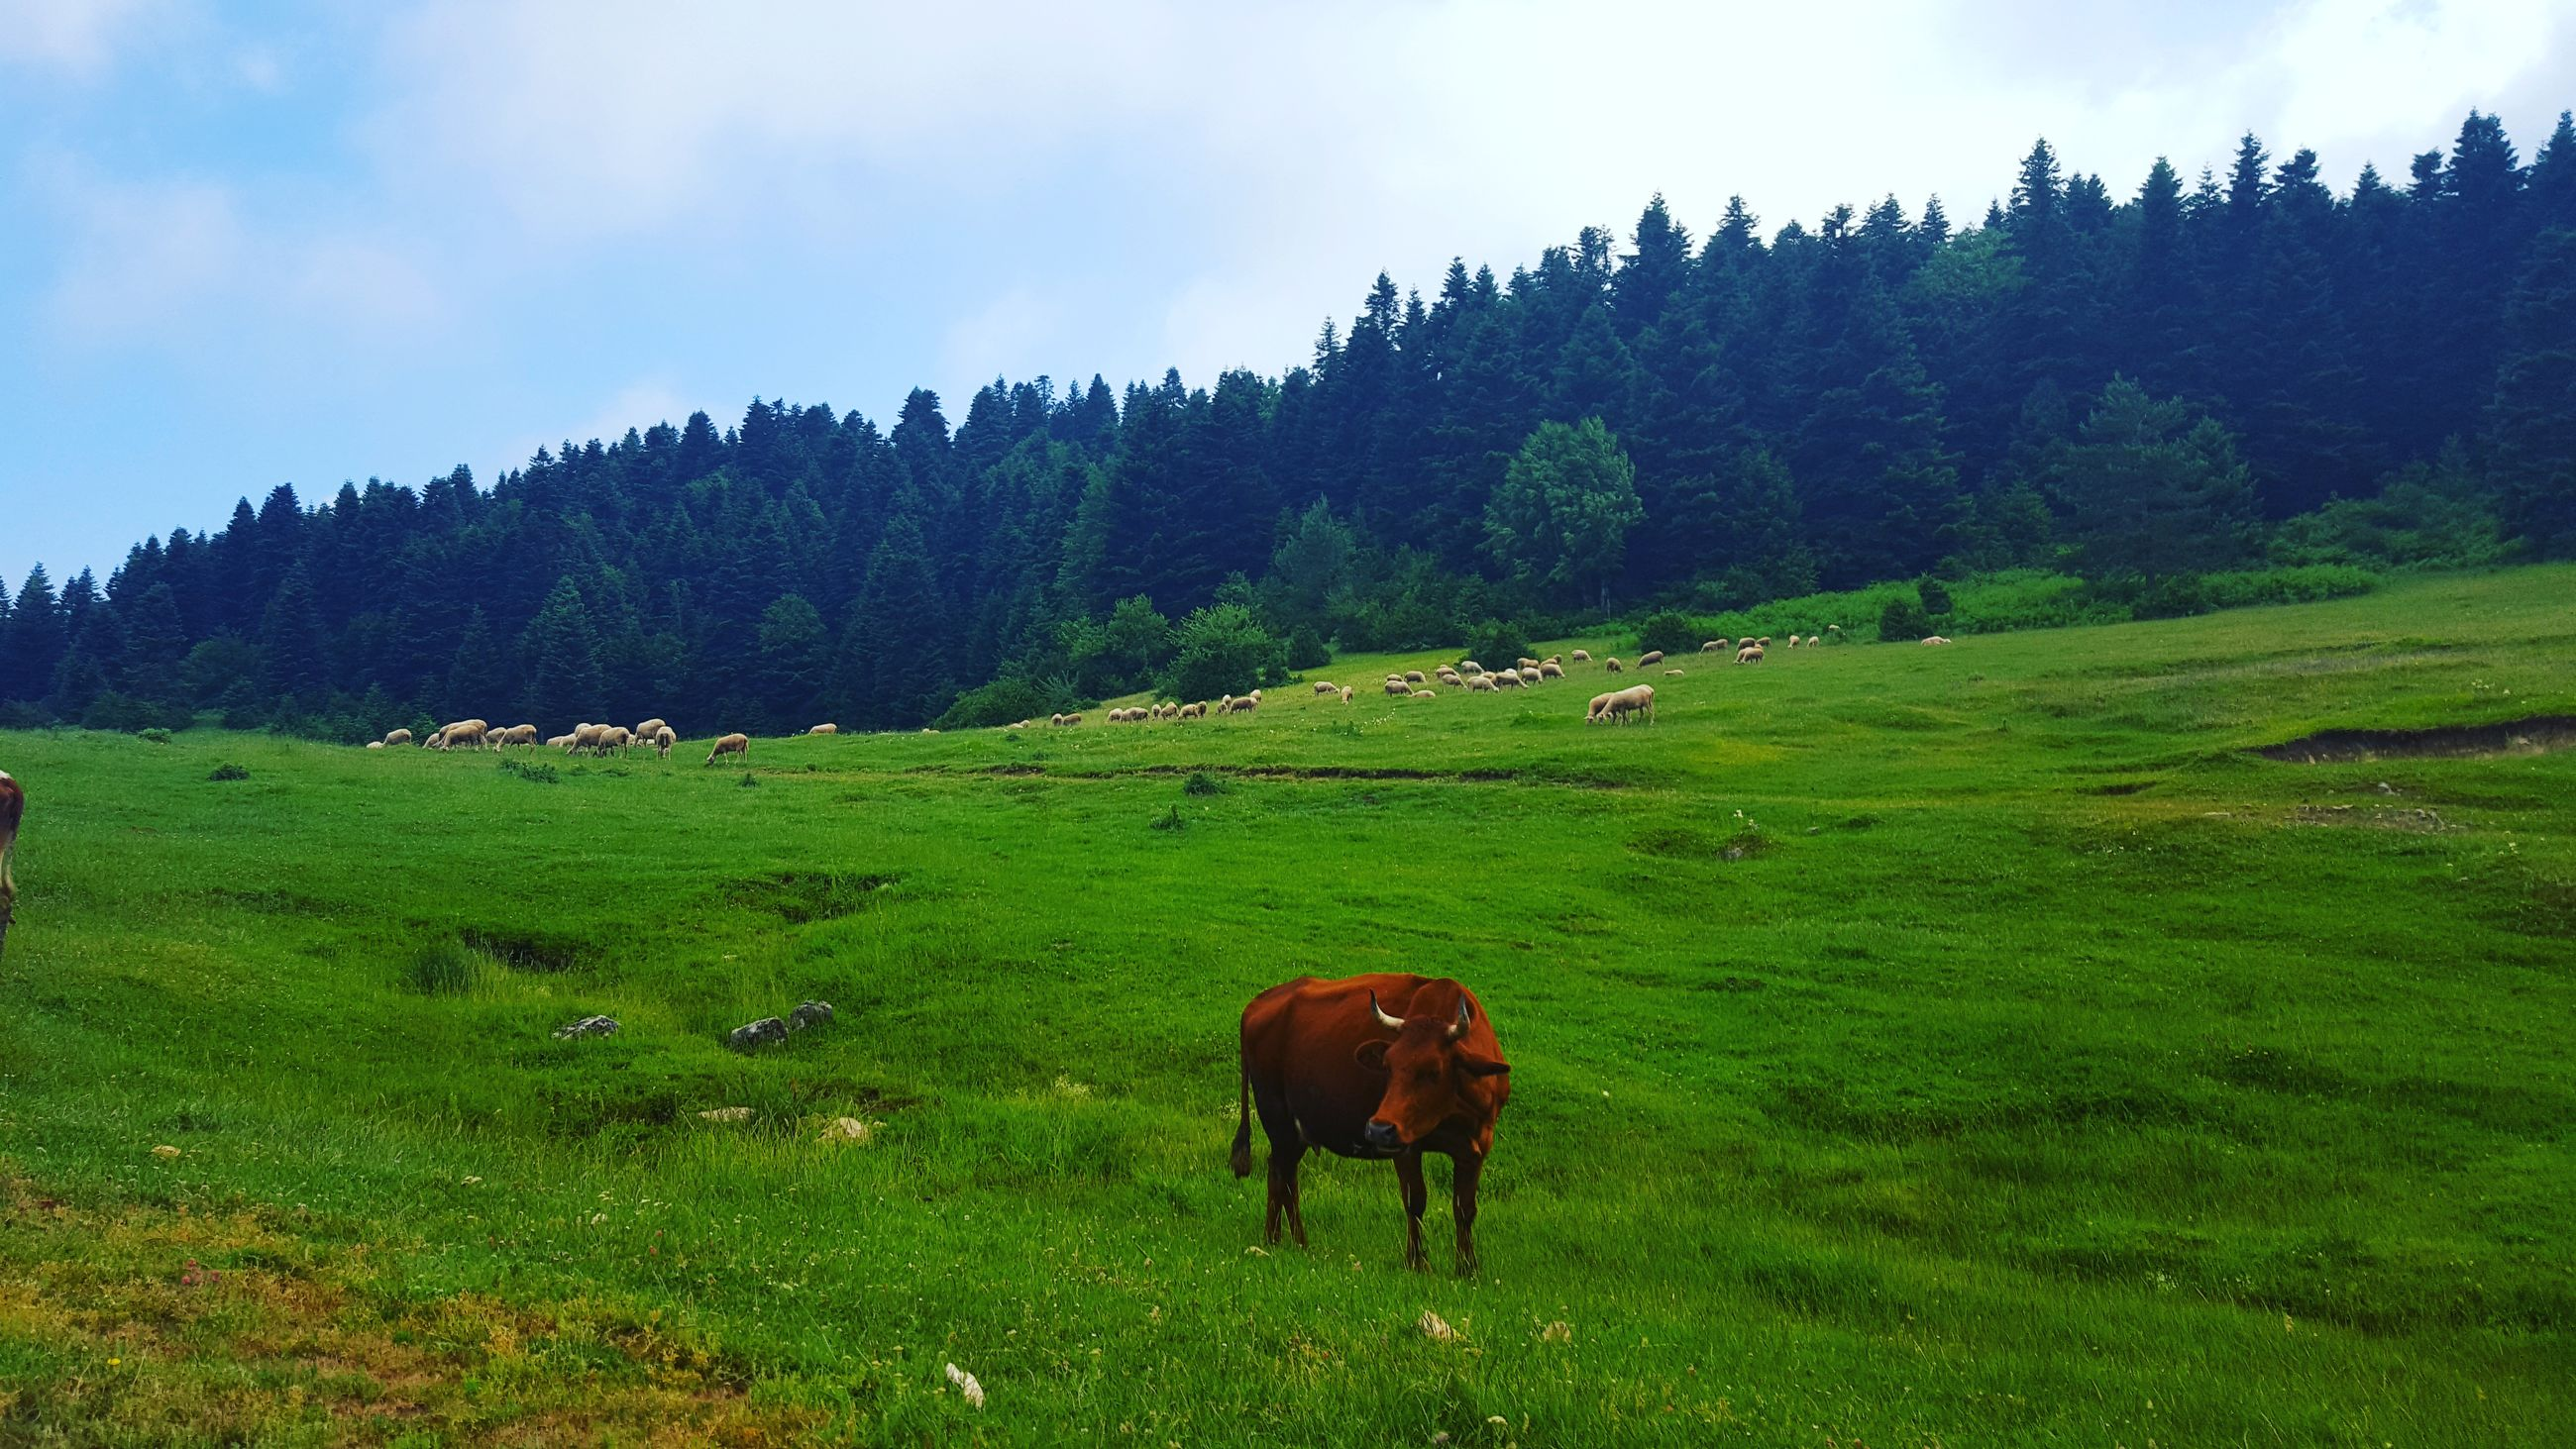 animal themes, grass, livestock, grazing, domestic animals, field, landscape, mammal, horse, green color, grassy, sky, nature, herbivorous, tranquil scene, tranquility, cow, beauty in nature, pasture